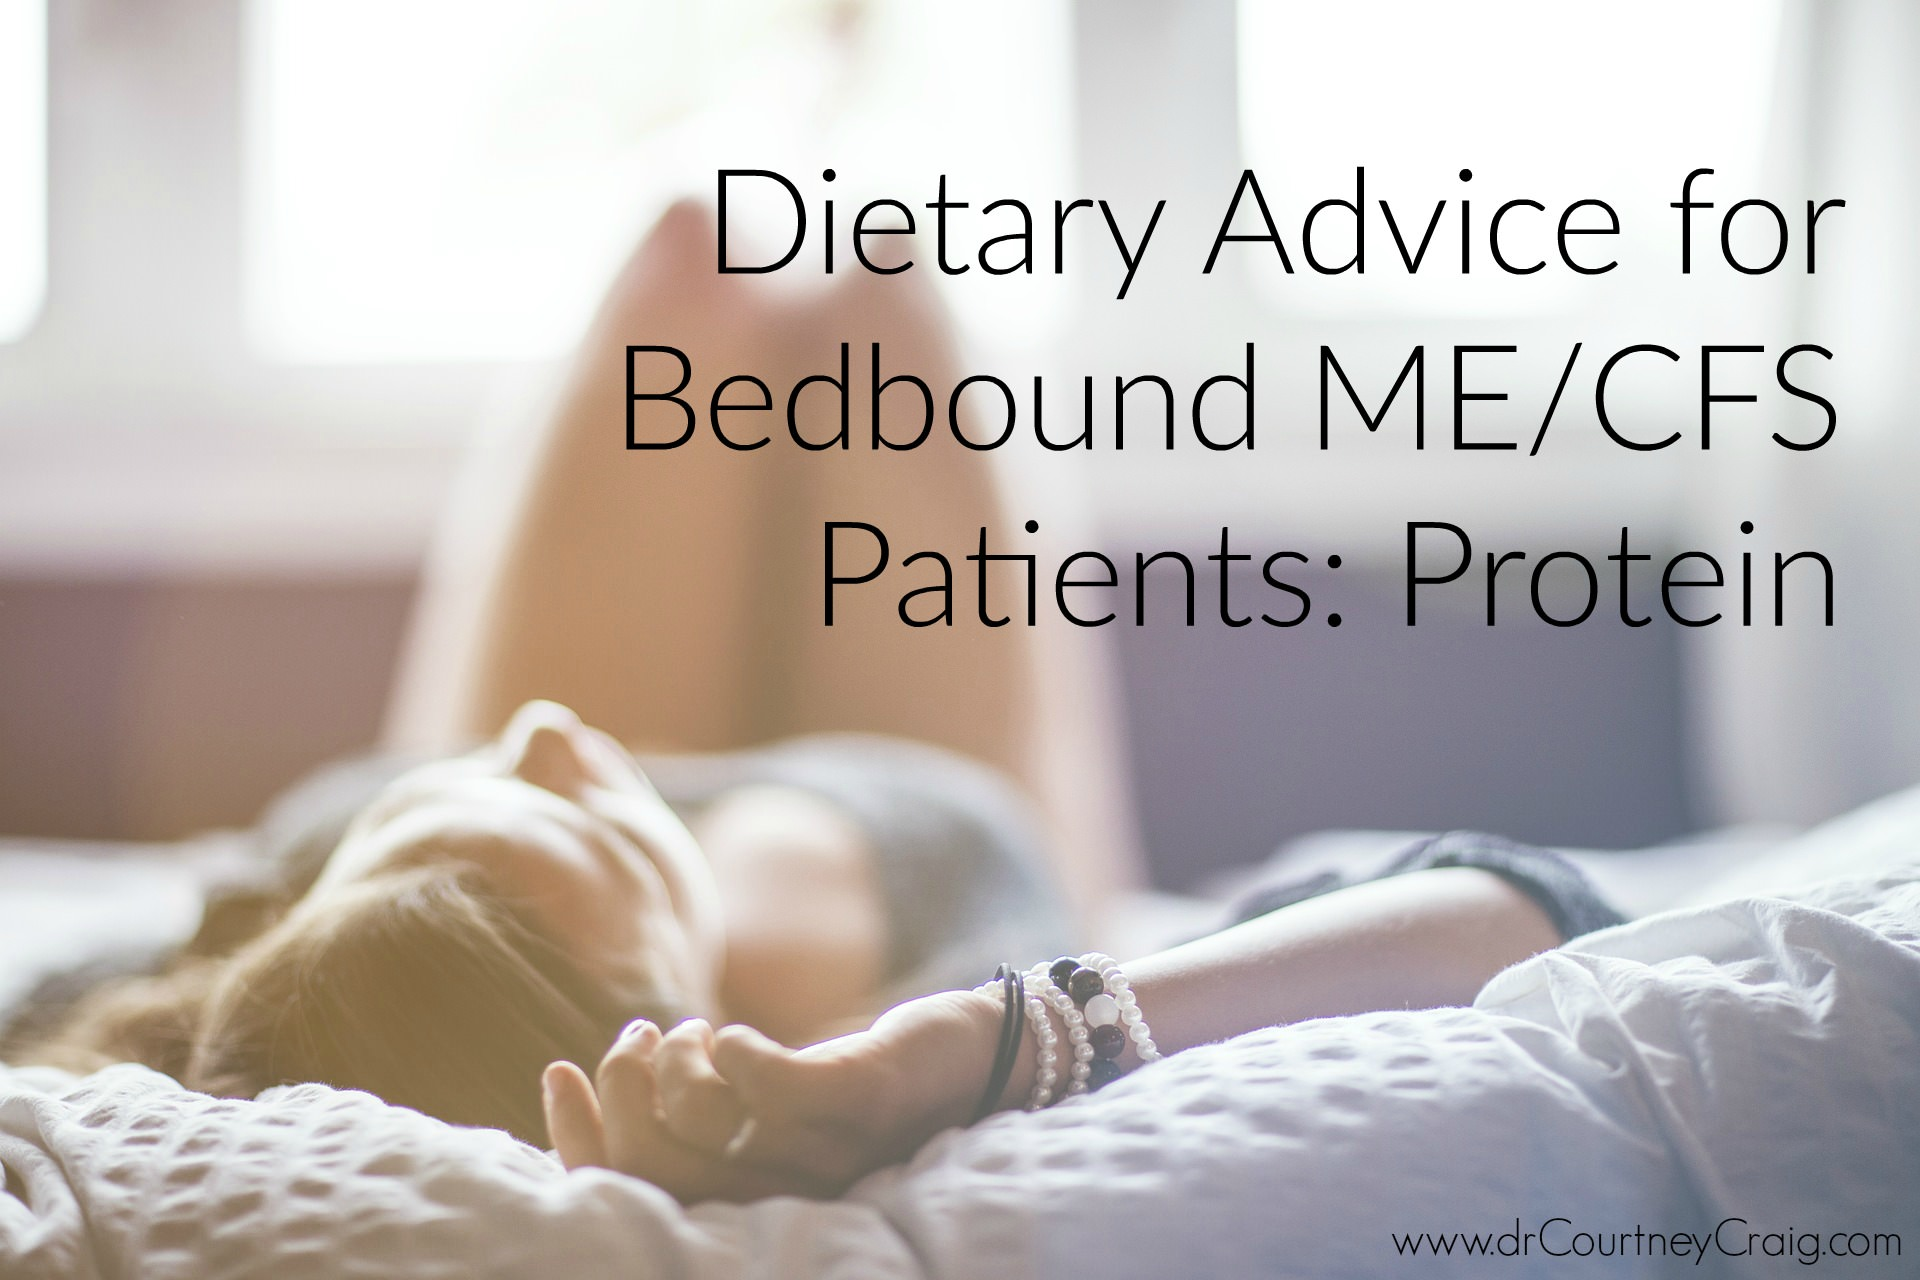 Patients with severe ME/CFS chronic fatigue that are also bedridden require more dietary protein for immune function, muscle preservation, and bone health.